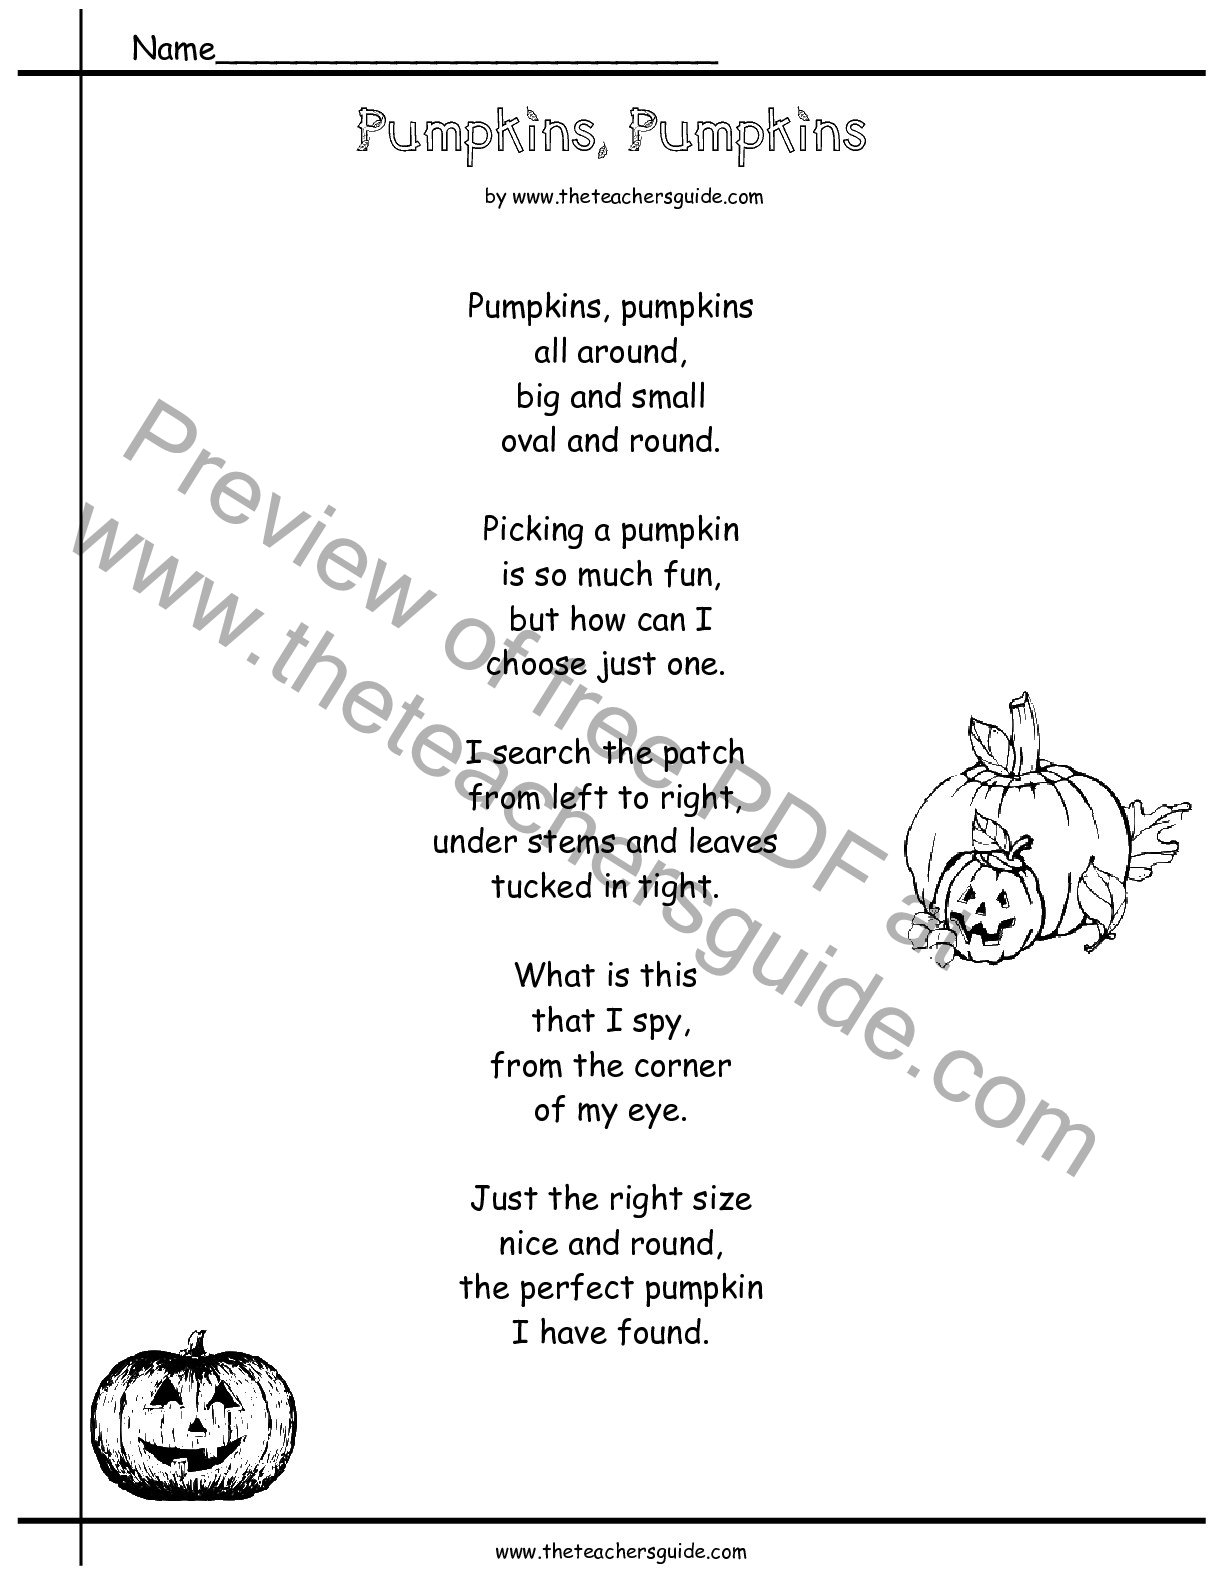 Pumpkins Lesson Plans Themes Printouts Crafts and Clipart – Life Cycle of a Pumpkin Worksheet